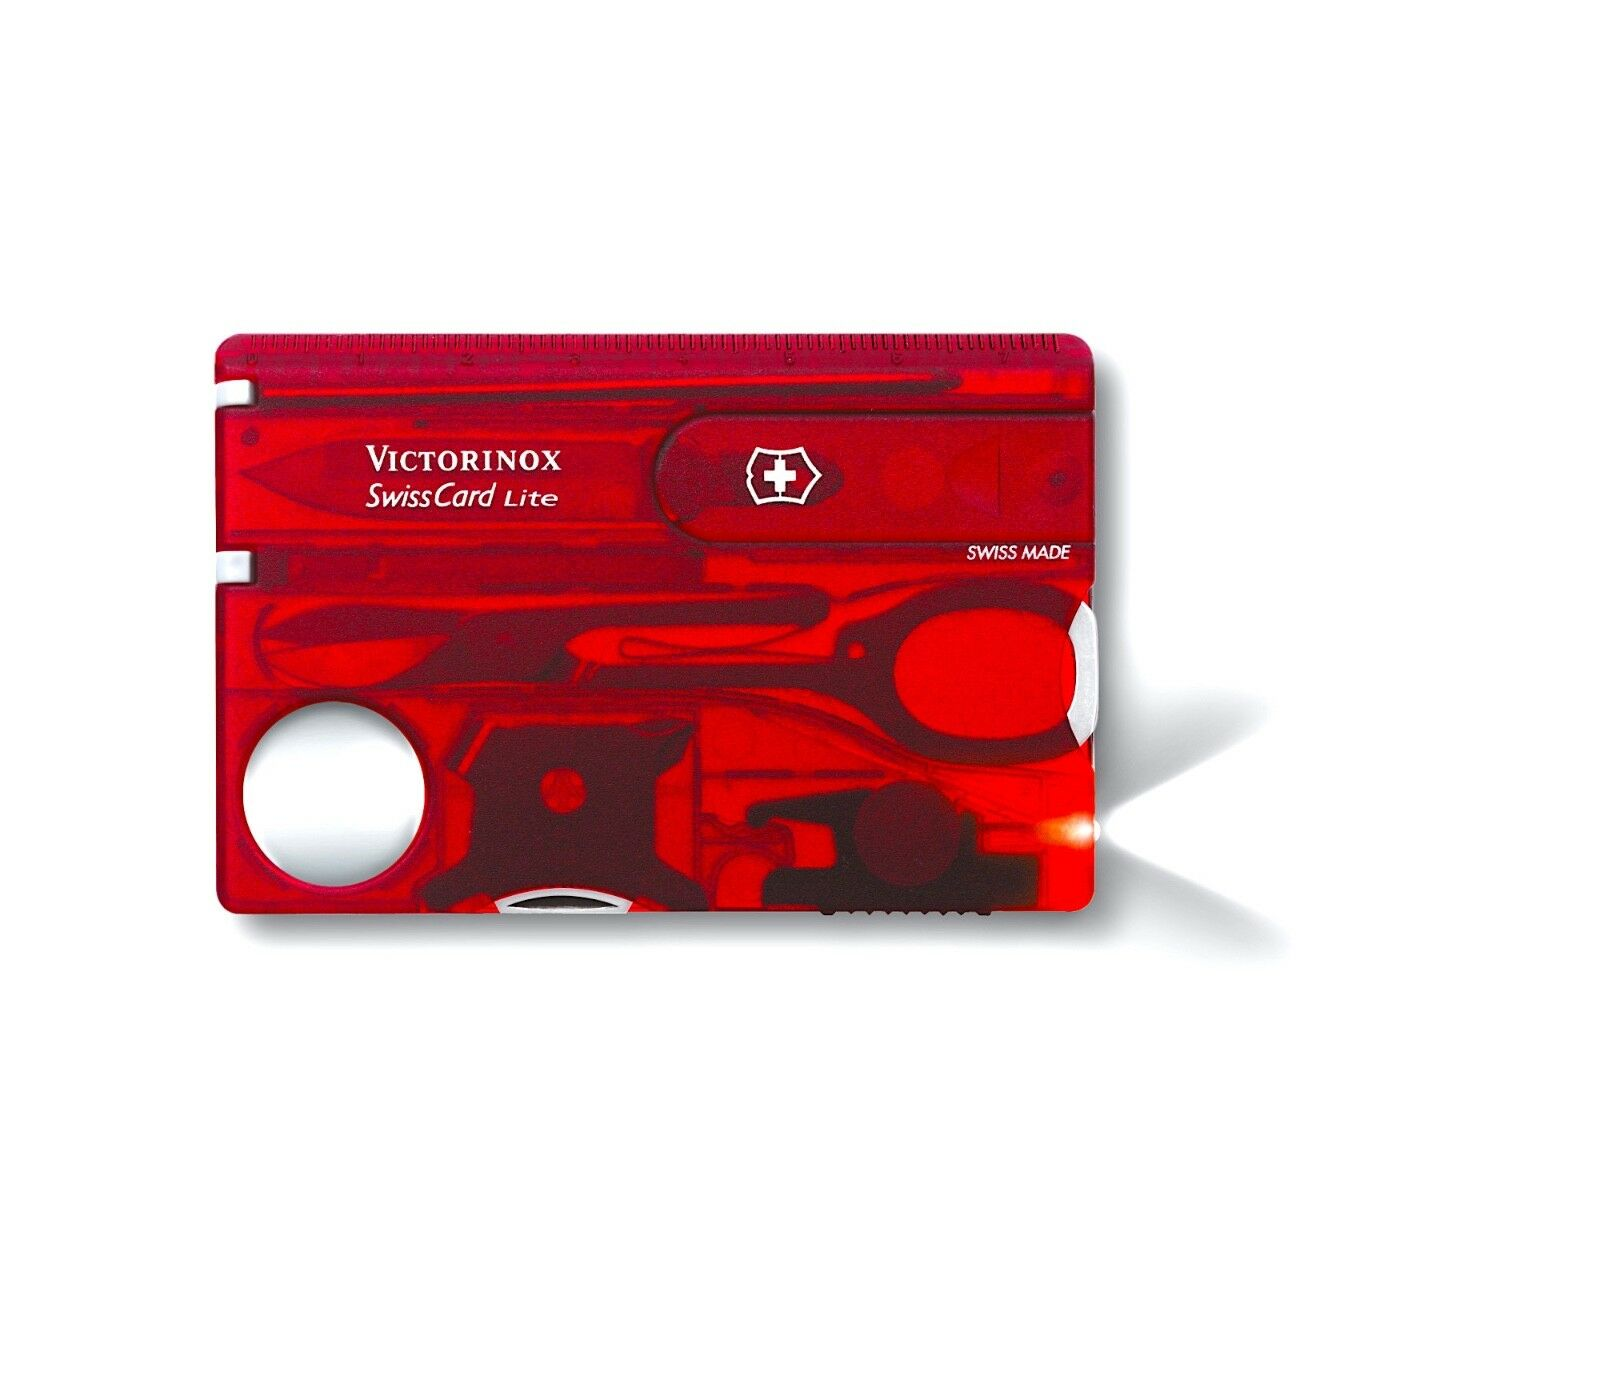 VICTORINOX SwissCard Lite   RUBY    White LED Light - Made in SWITZERLAND  cheap and top quality